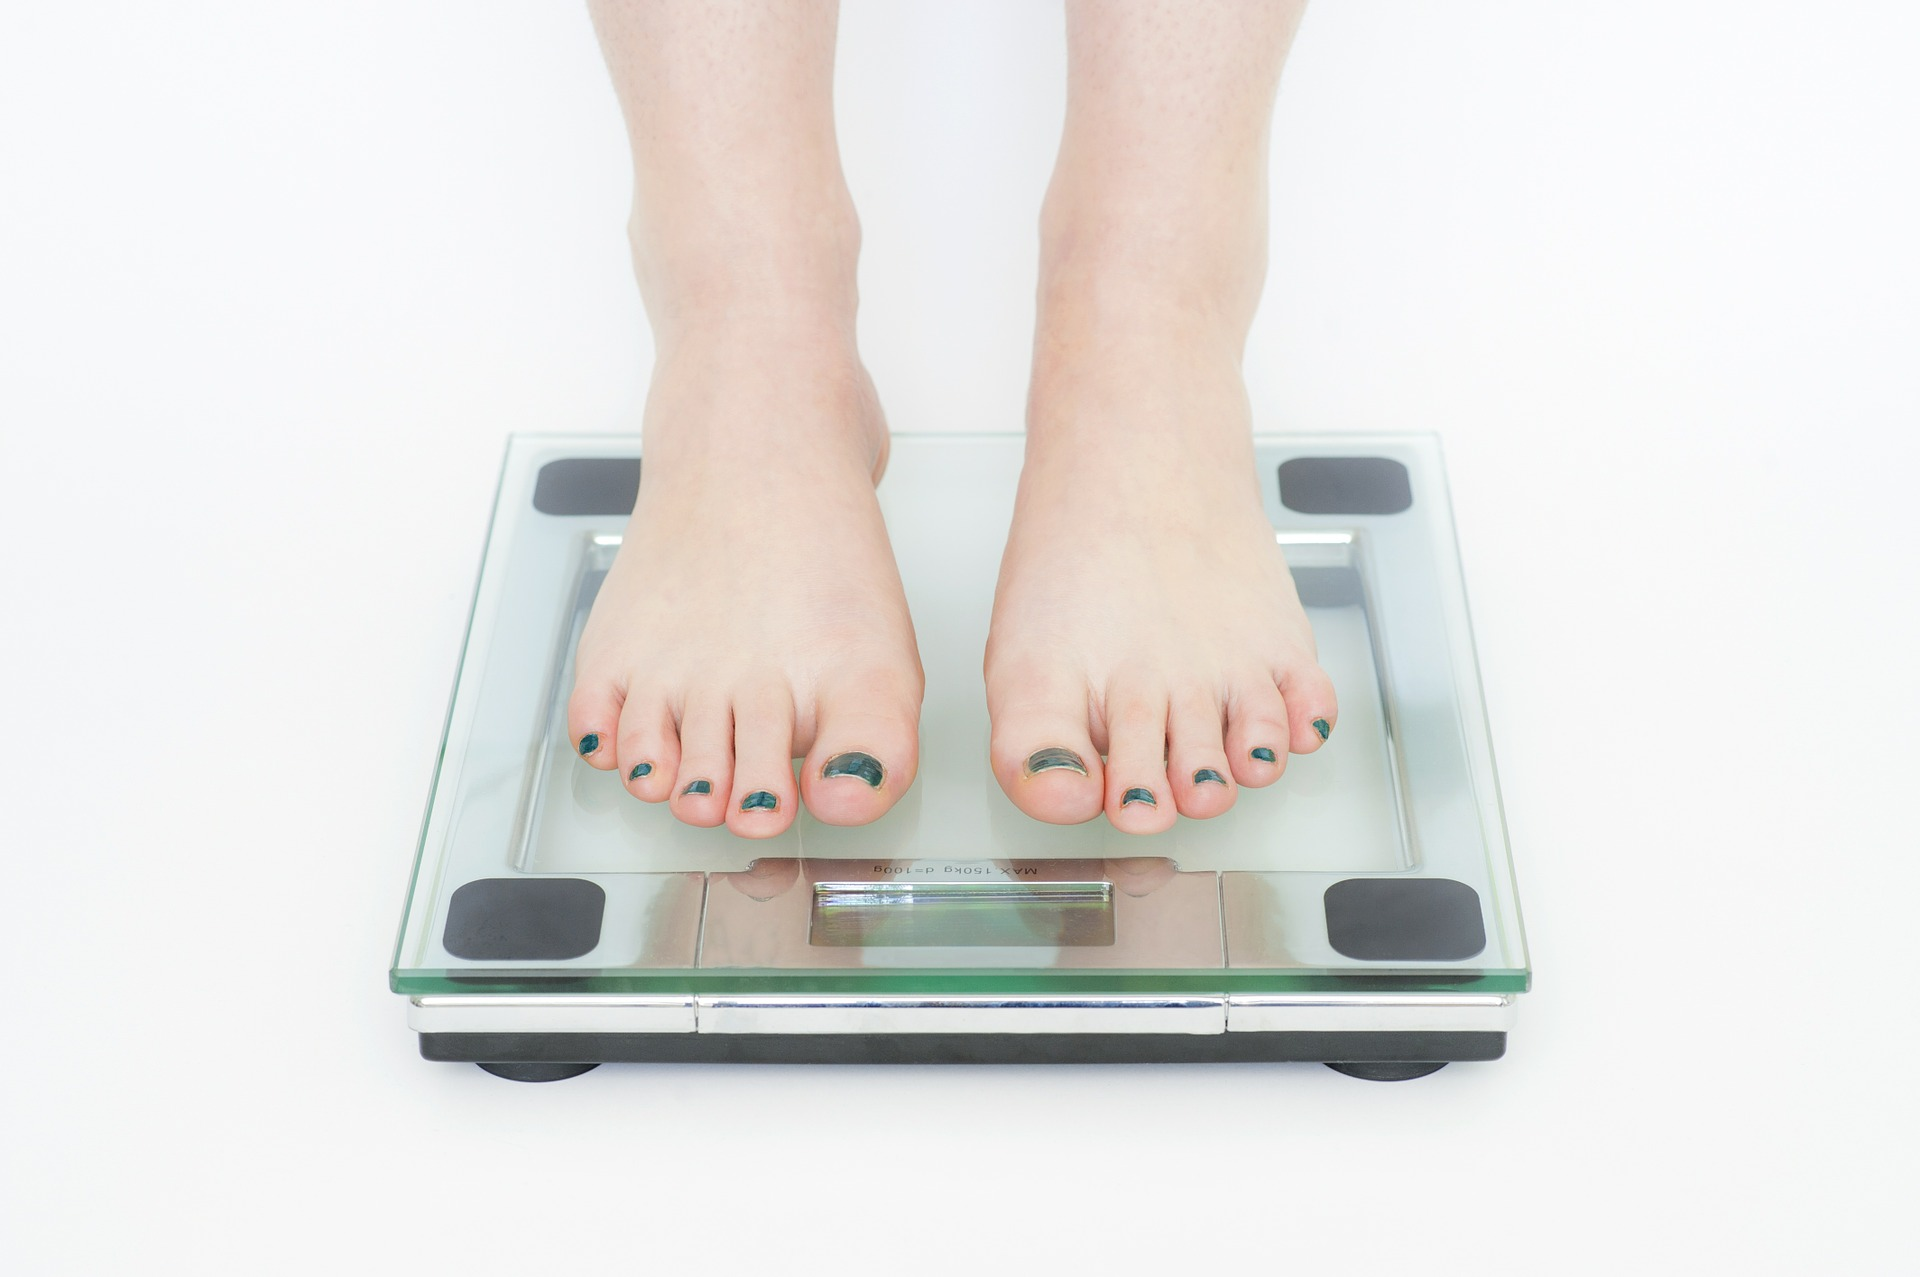 weight loss - on scale